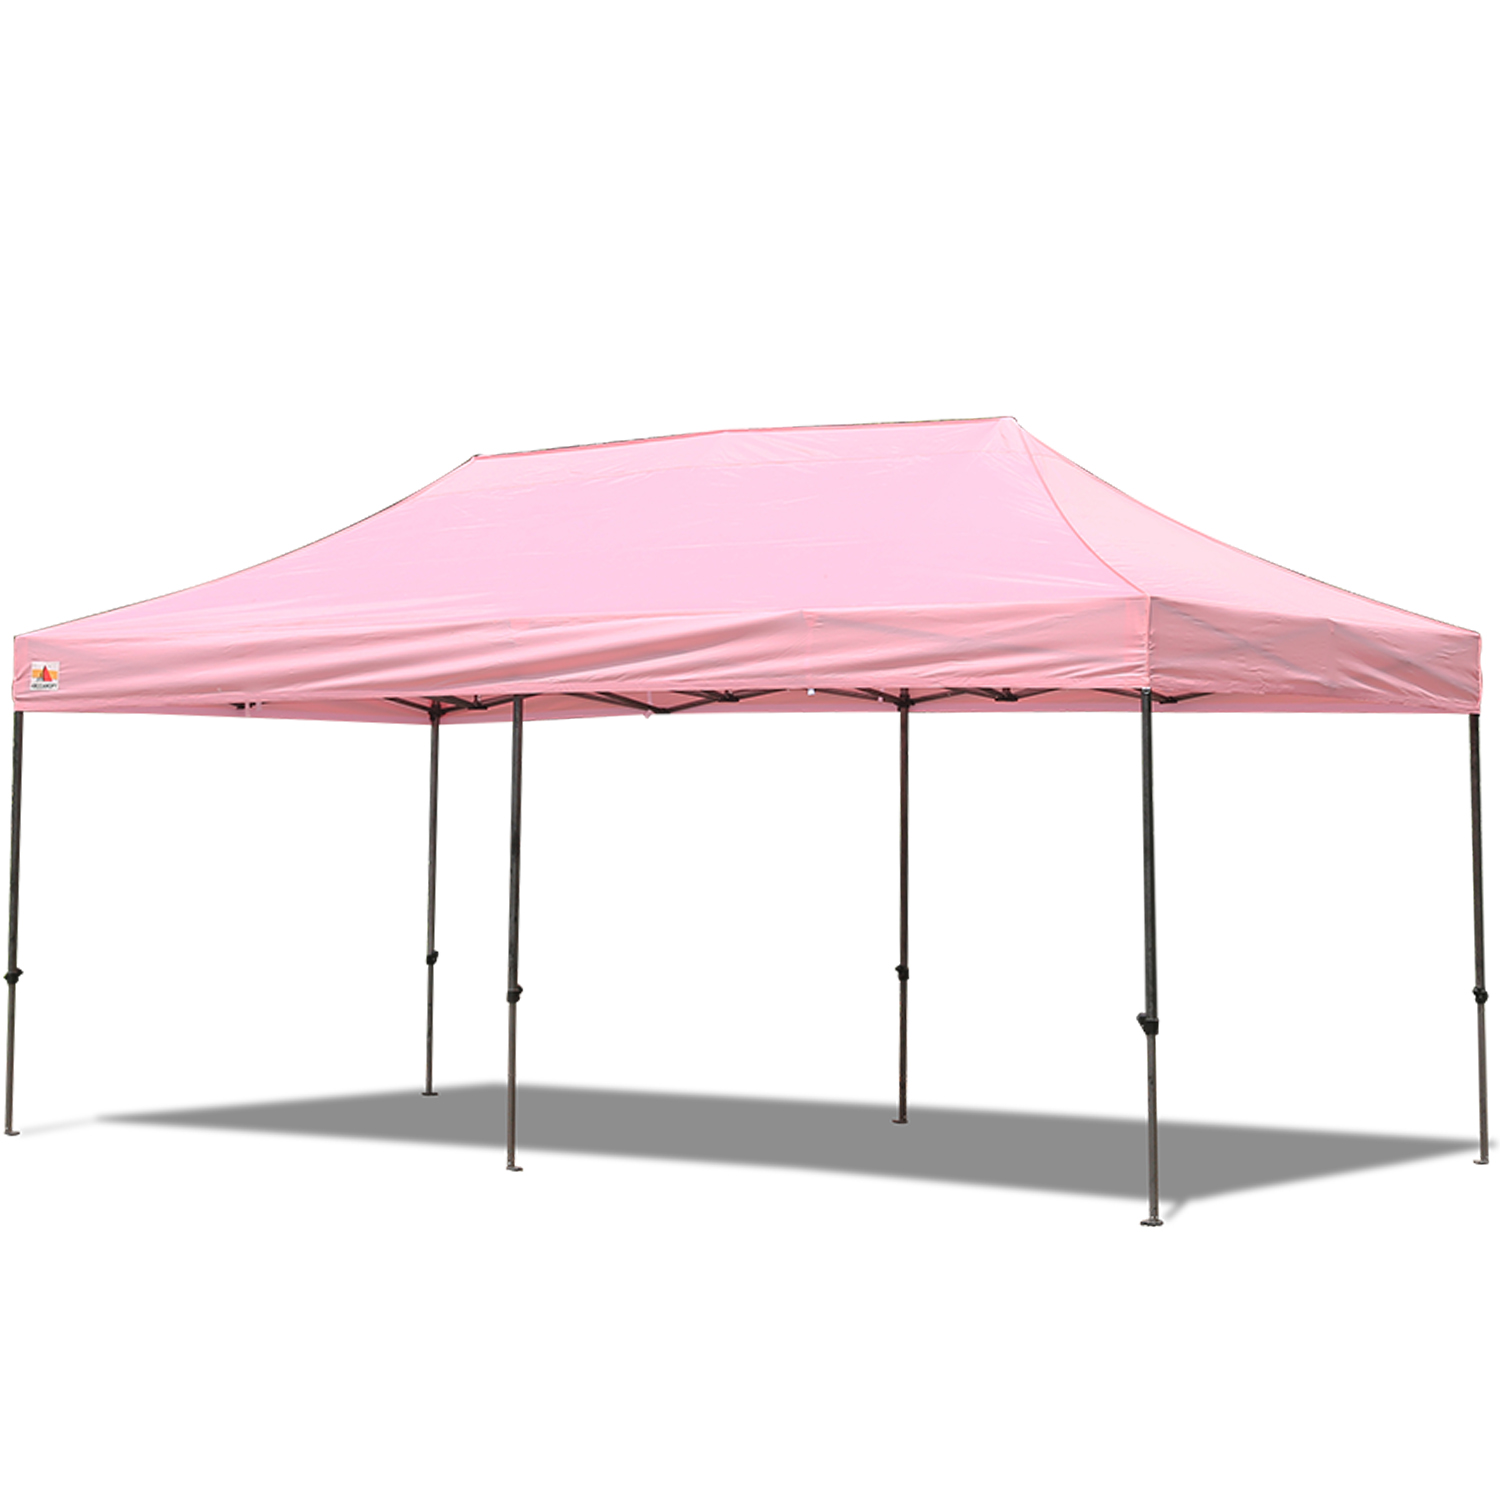 Abccanopy 3m X 6m Pop Up Canopy Instant Shelter Outdor Party Tent Gazebo